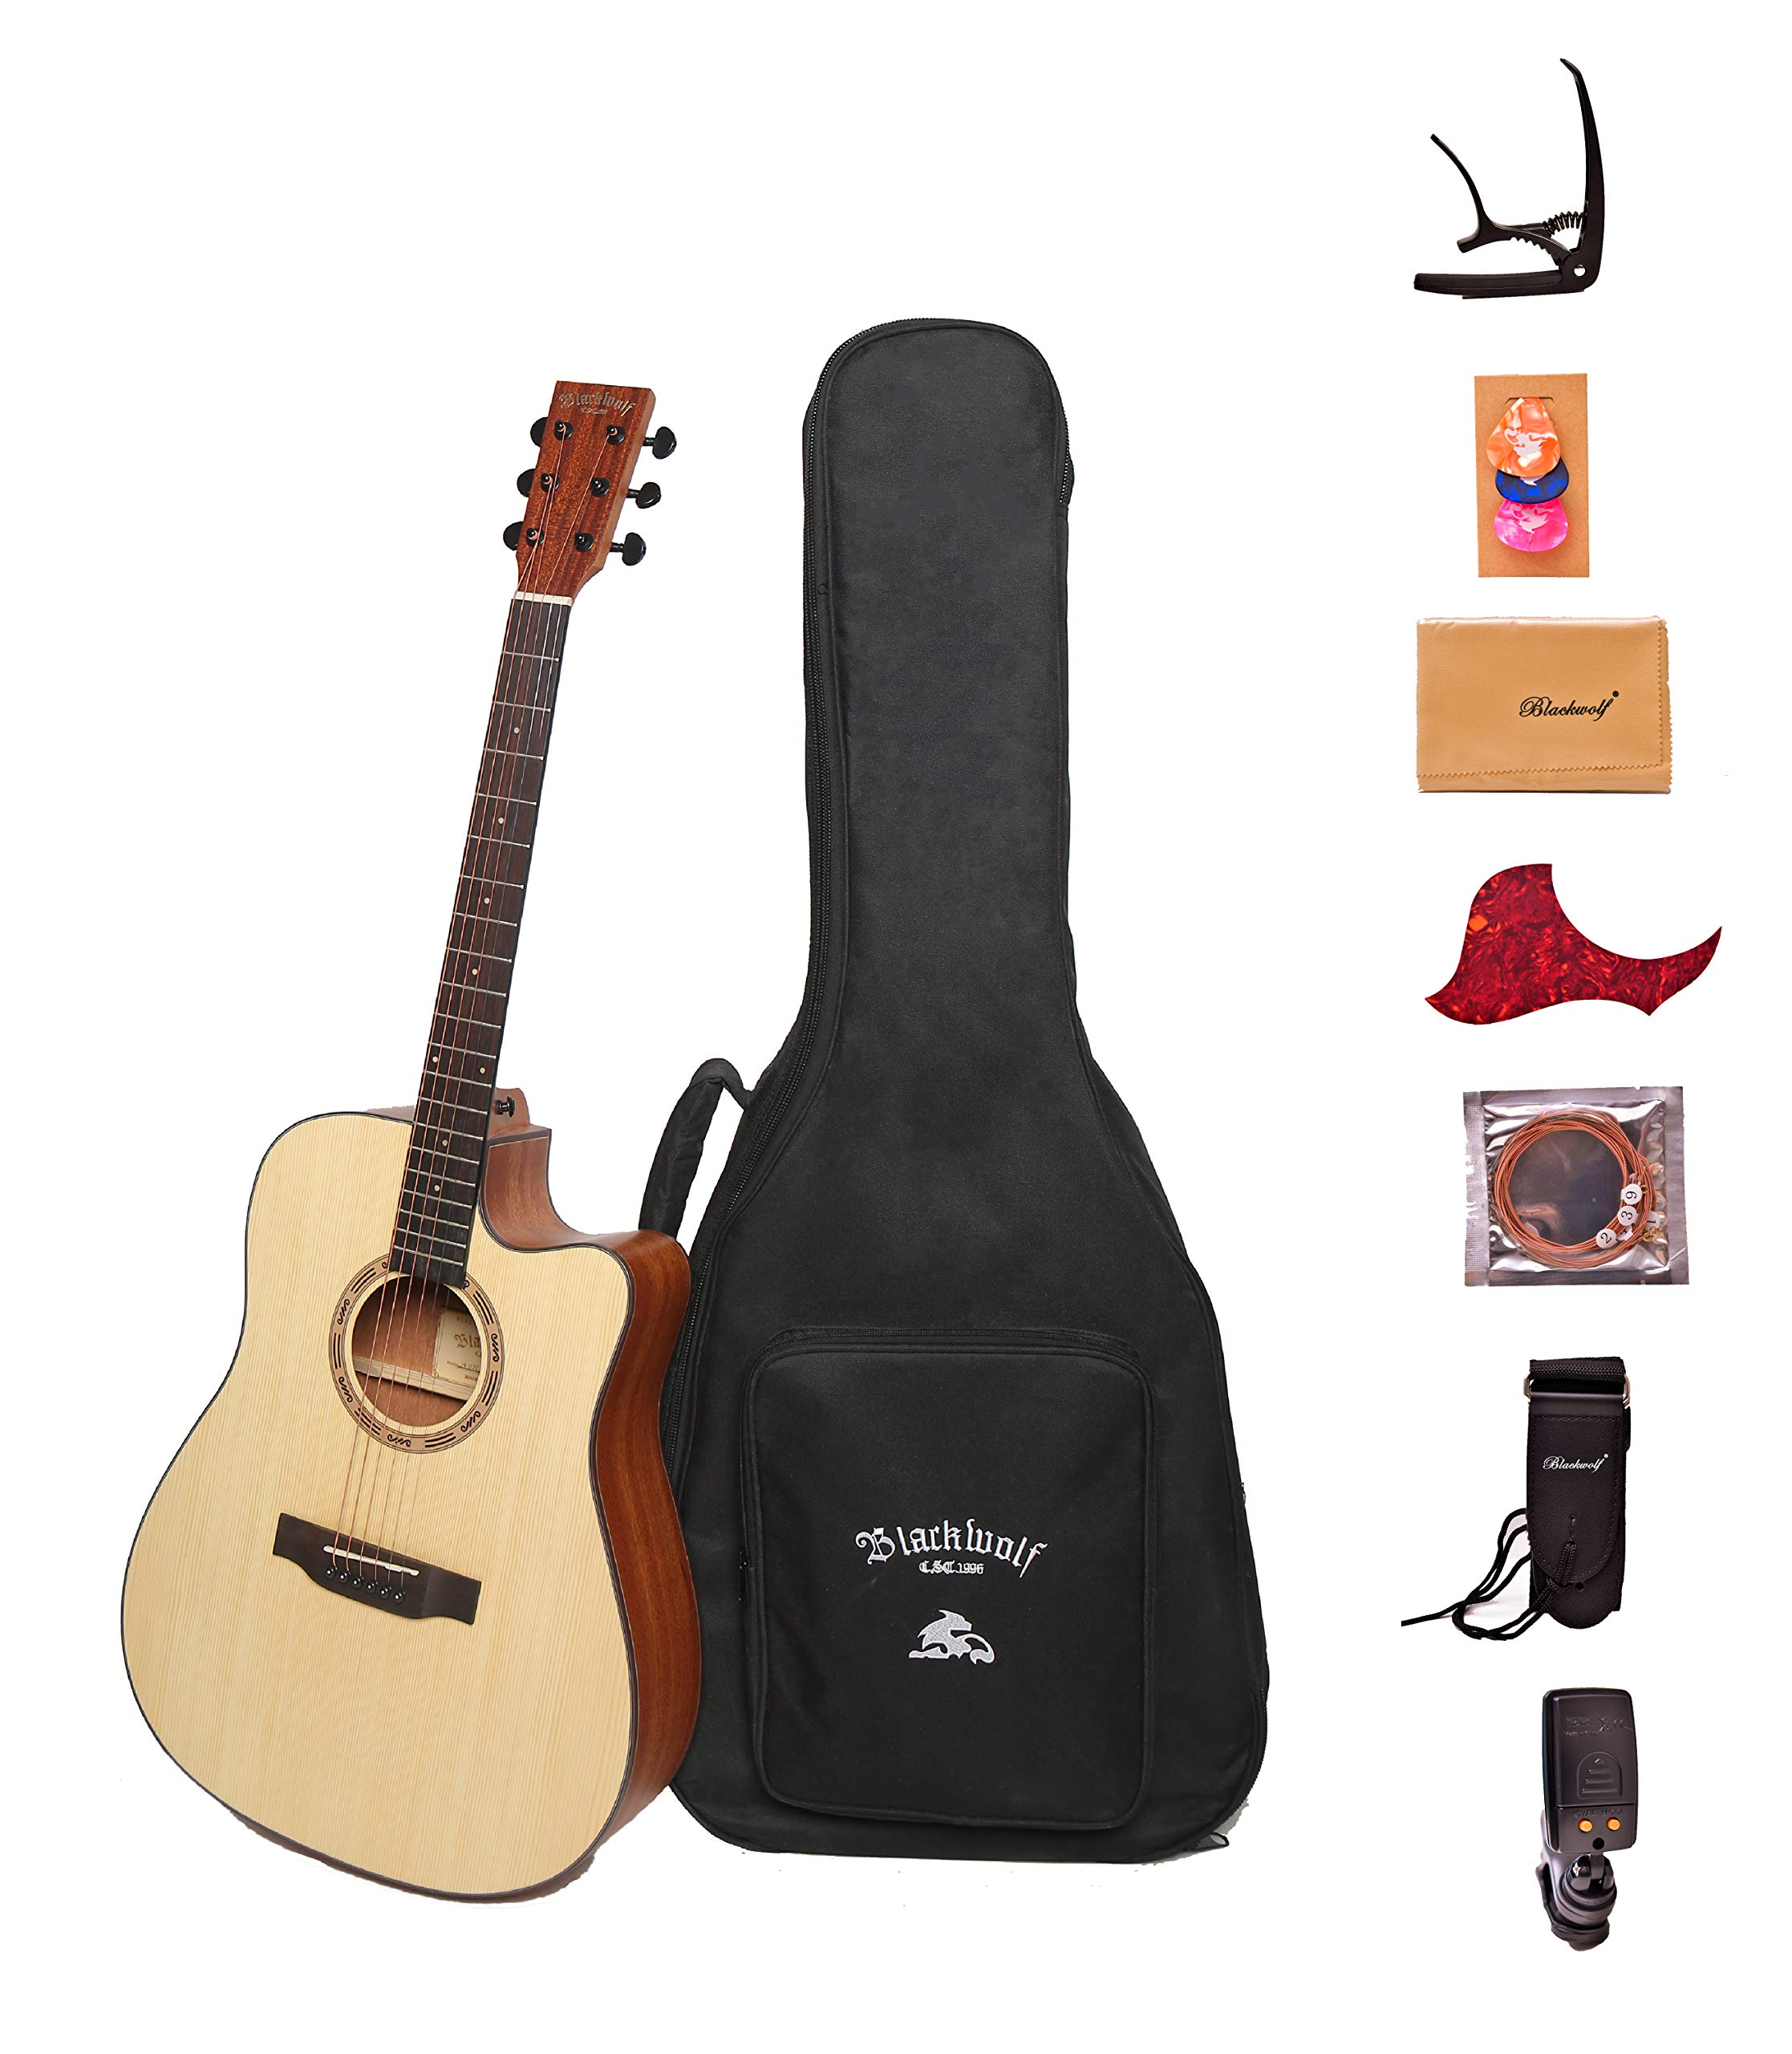 Black Wolf Beginners Acoustic Guitar 41'' Natural Color Cutaway Bundle with Gig Bag, Tuner, Capo,Strings, Strap, Picks and Polishing Cloth S1 by blackwolf